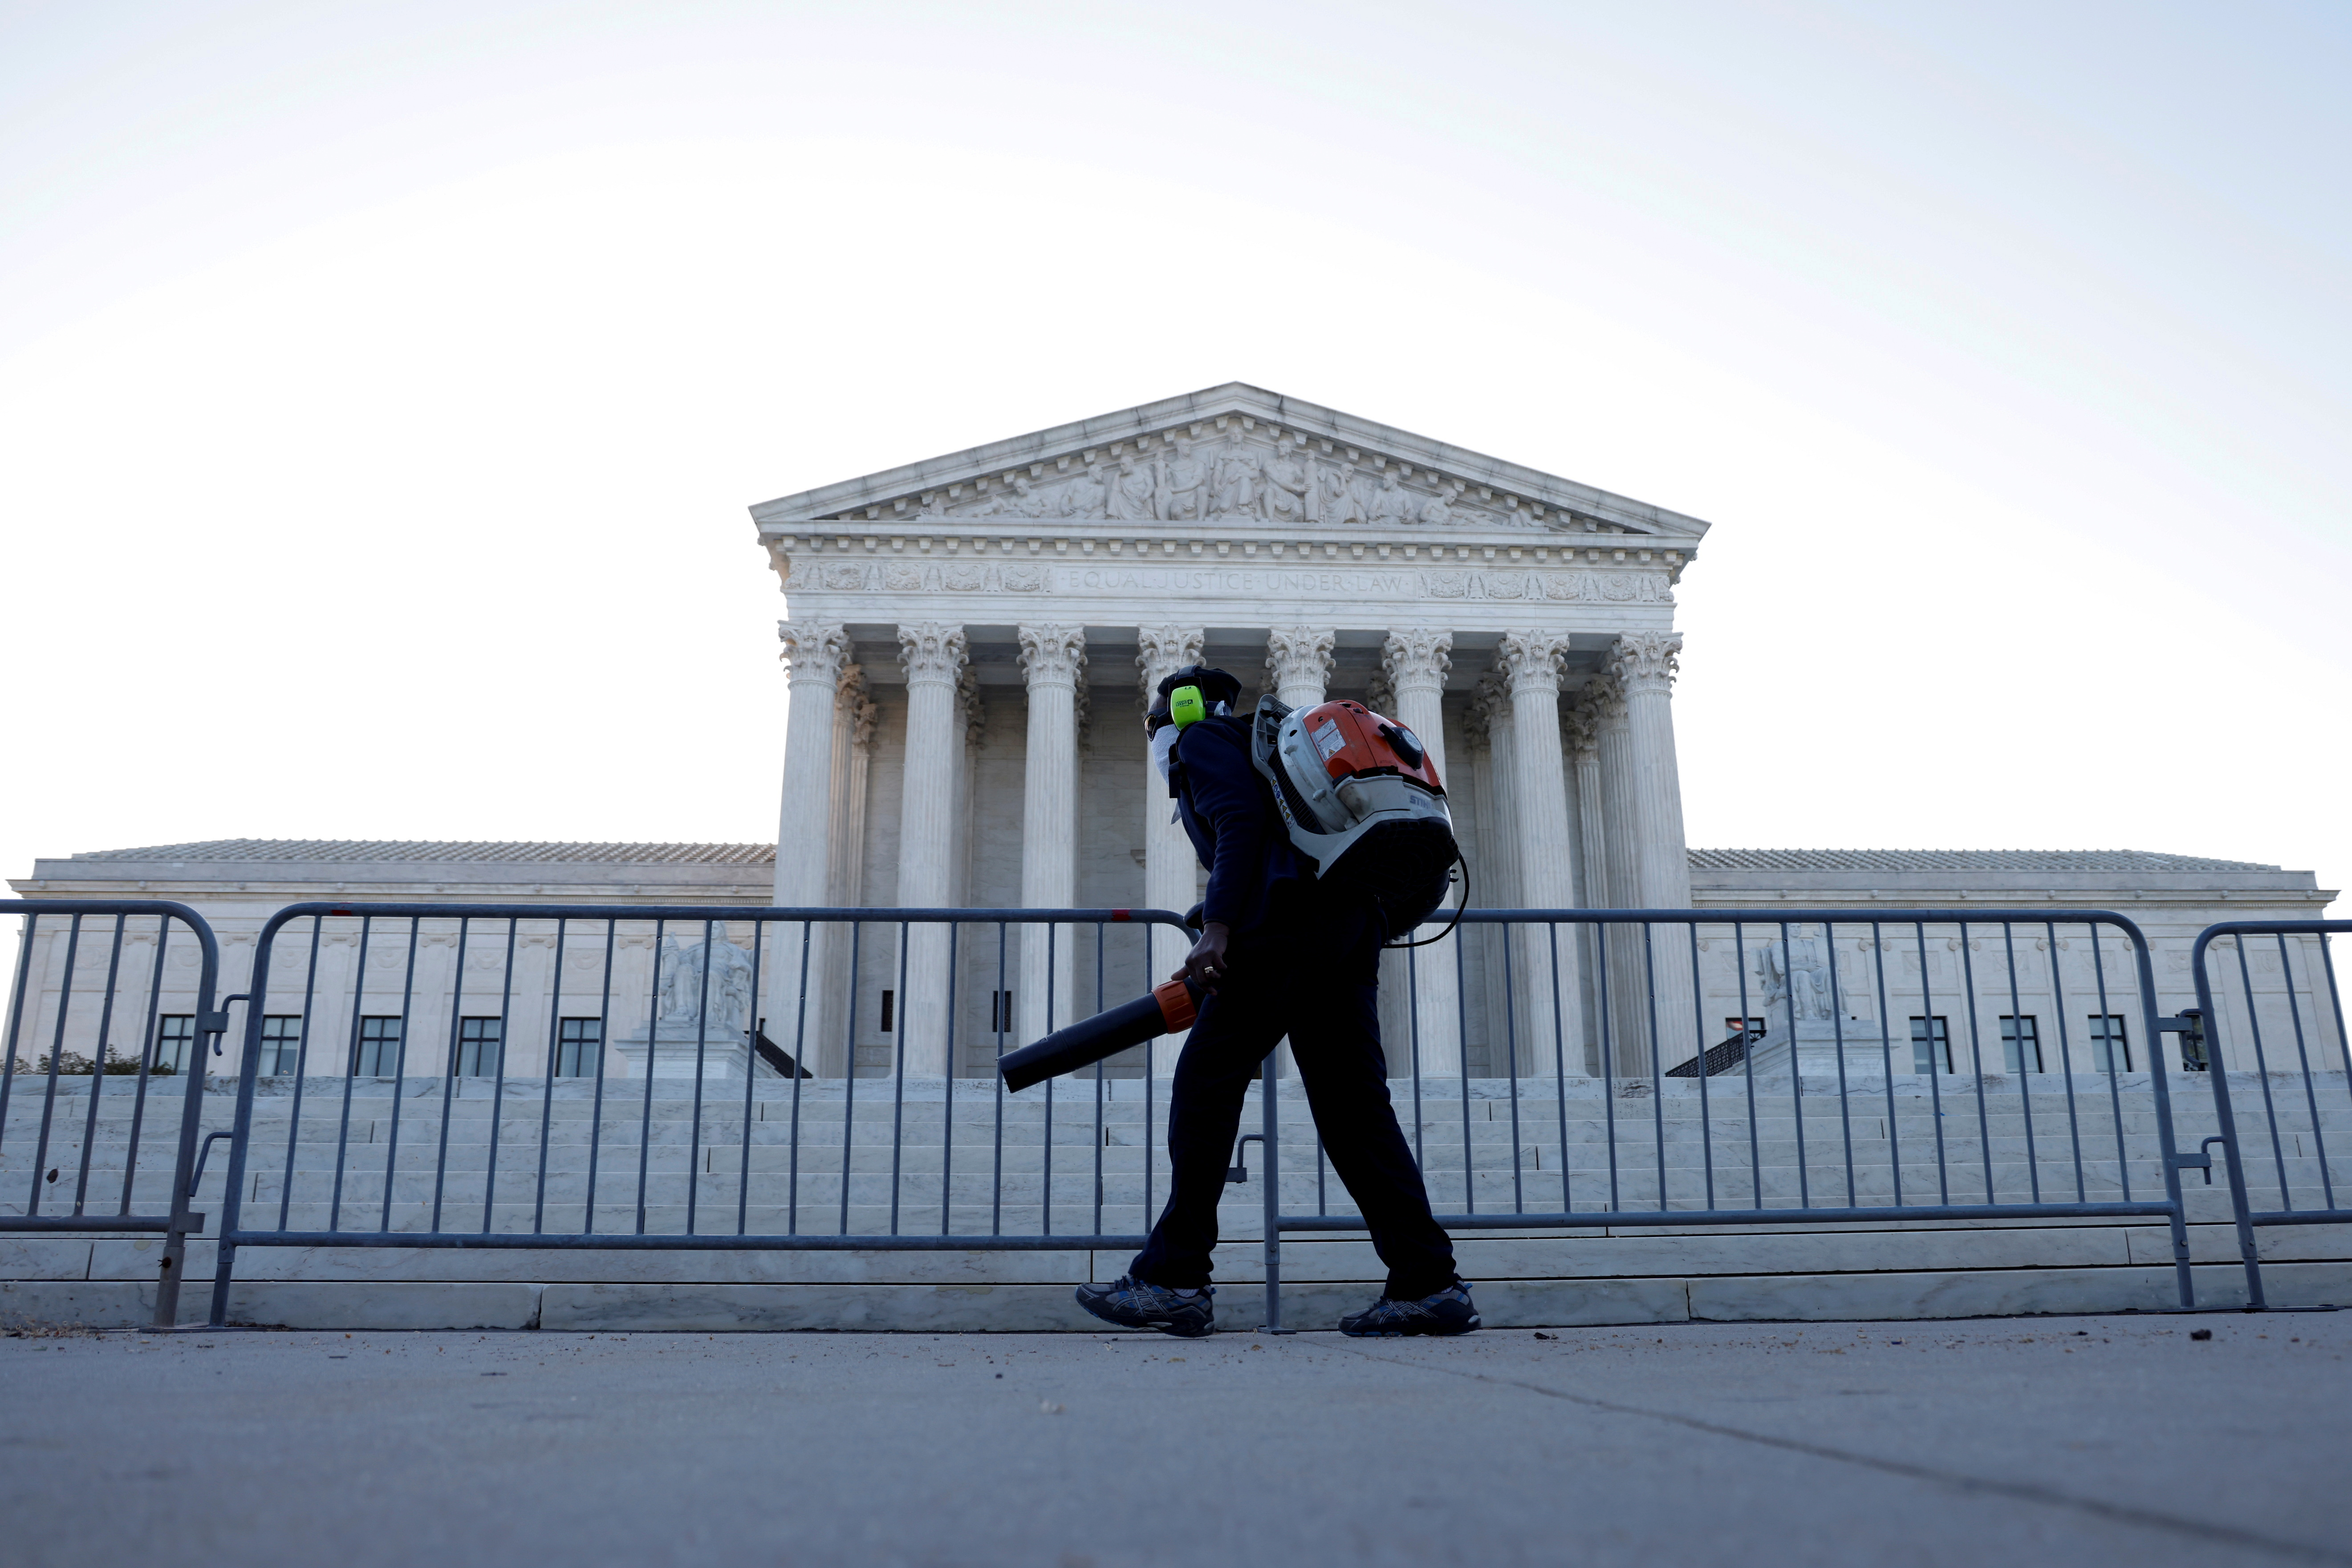 A worker clears front steps as morning rises over the U.S. Supreme Court building, still closed to the public during the COVID-19 pandemic, in Washington, U.S. April 26, 2021.  REUTERS/Jonathan Ernst/File Photo